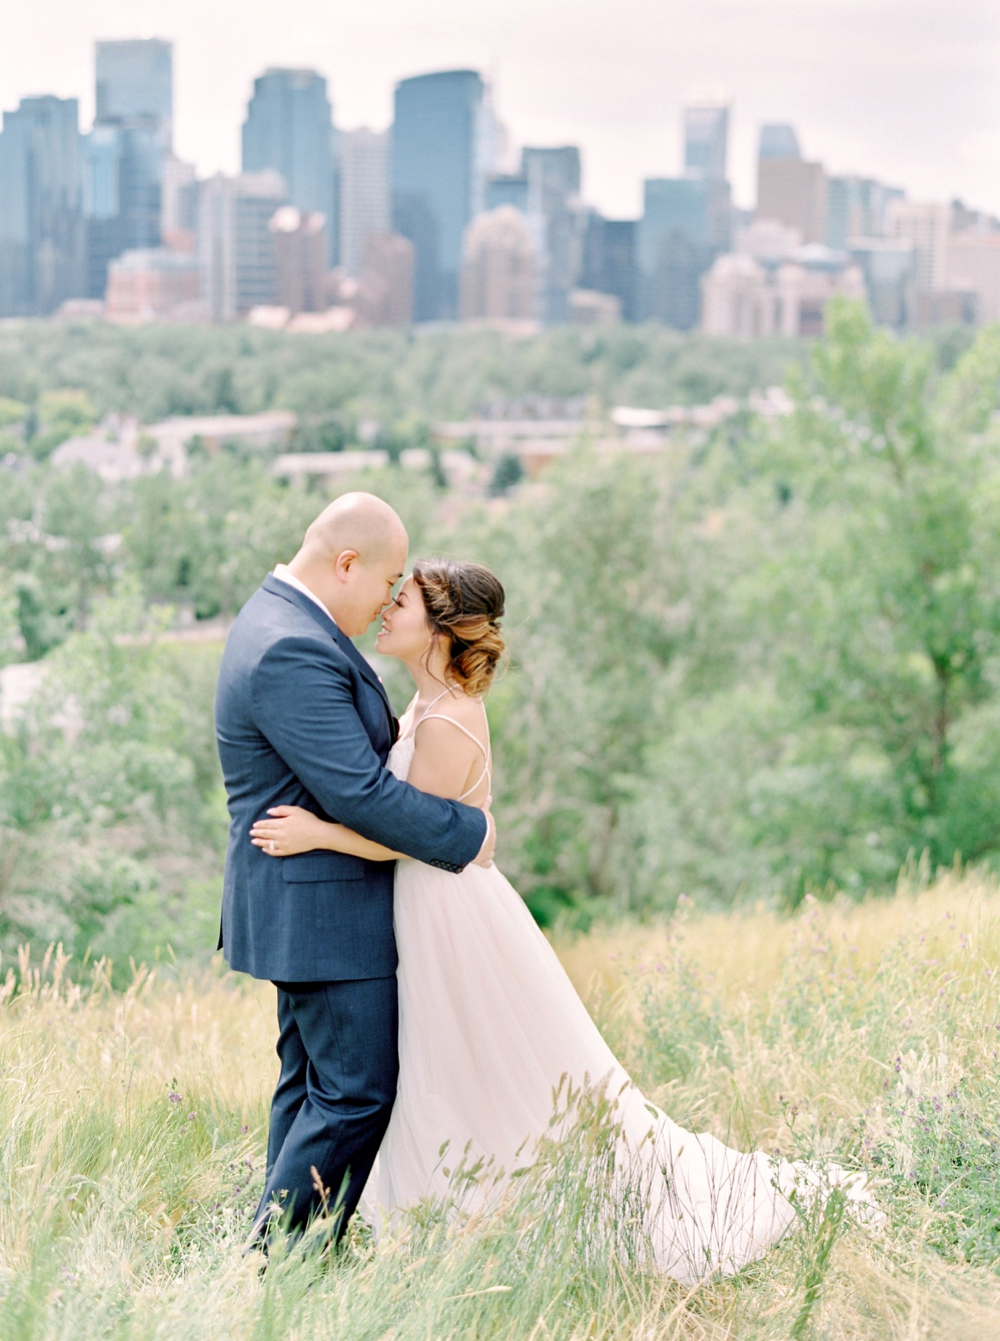 Bride and groom portraits downtown calgary | BHLDN wedding dress | Justine milton fine art wedding photographers | calgary wedding at the lake house